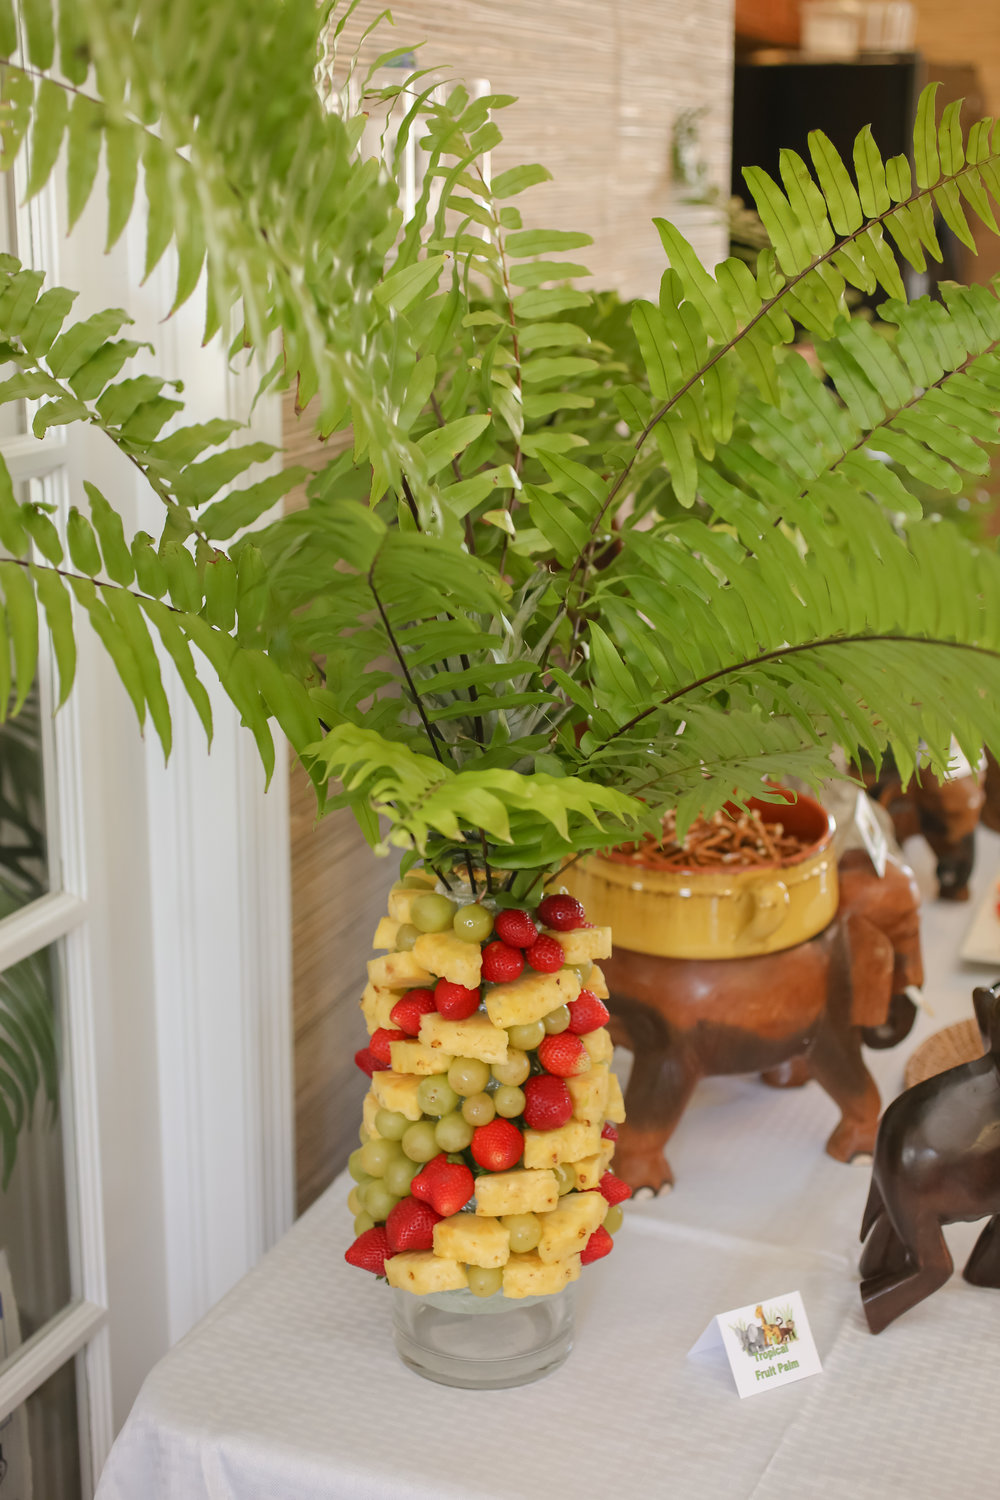 A towering 'Tropical Fruit Palm' added some color and sweetness to the food station!